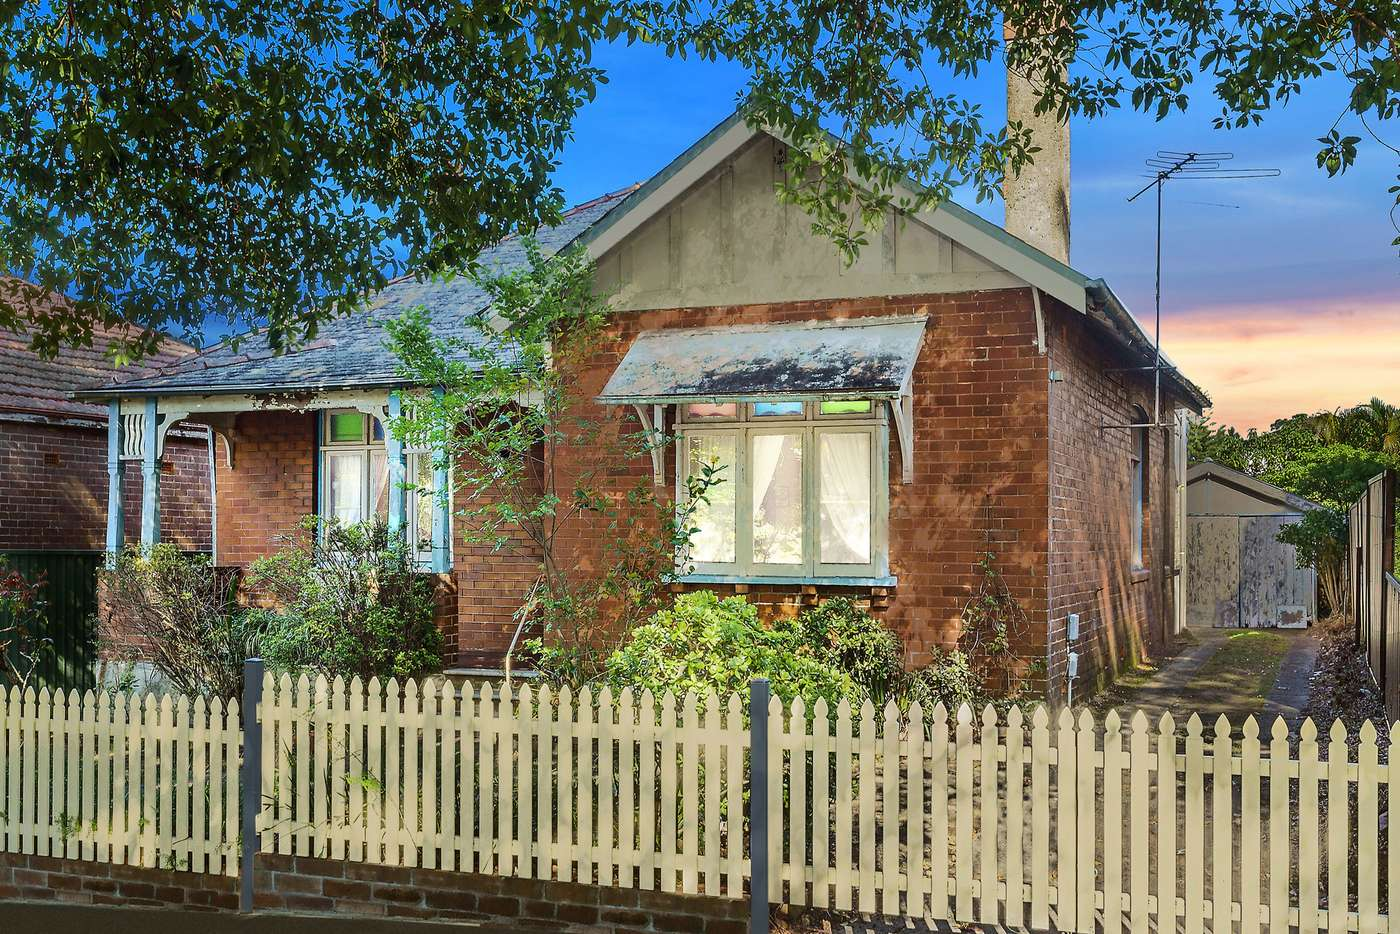 Main view of Homely house listing, 47 Kingsland Road, Strathfield NSW 2135